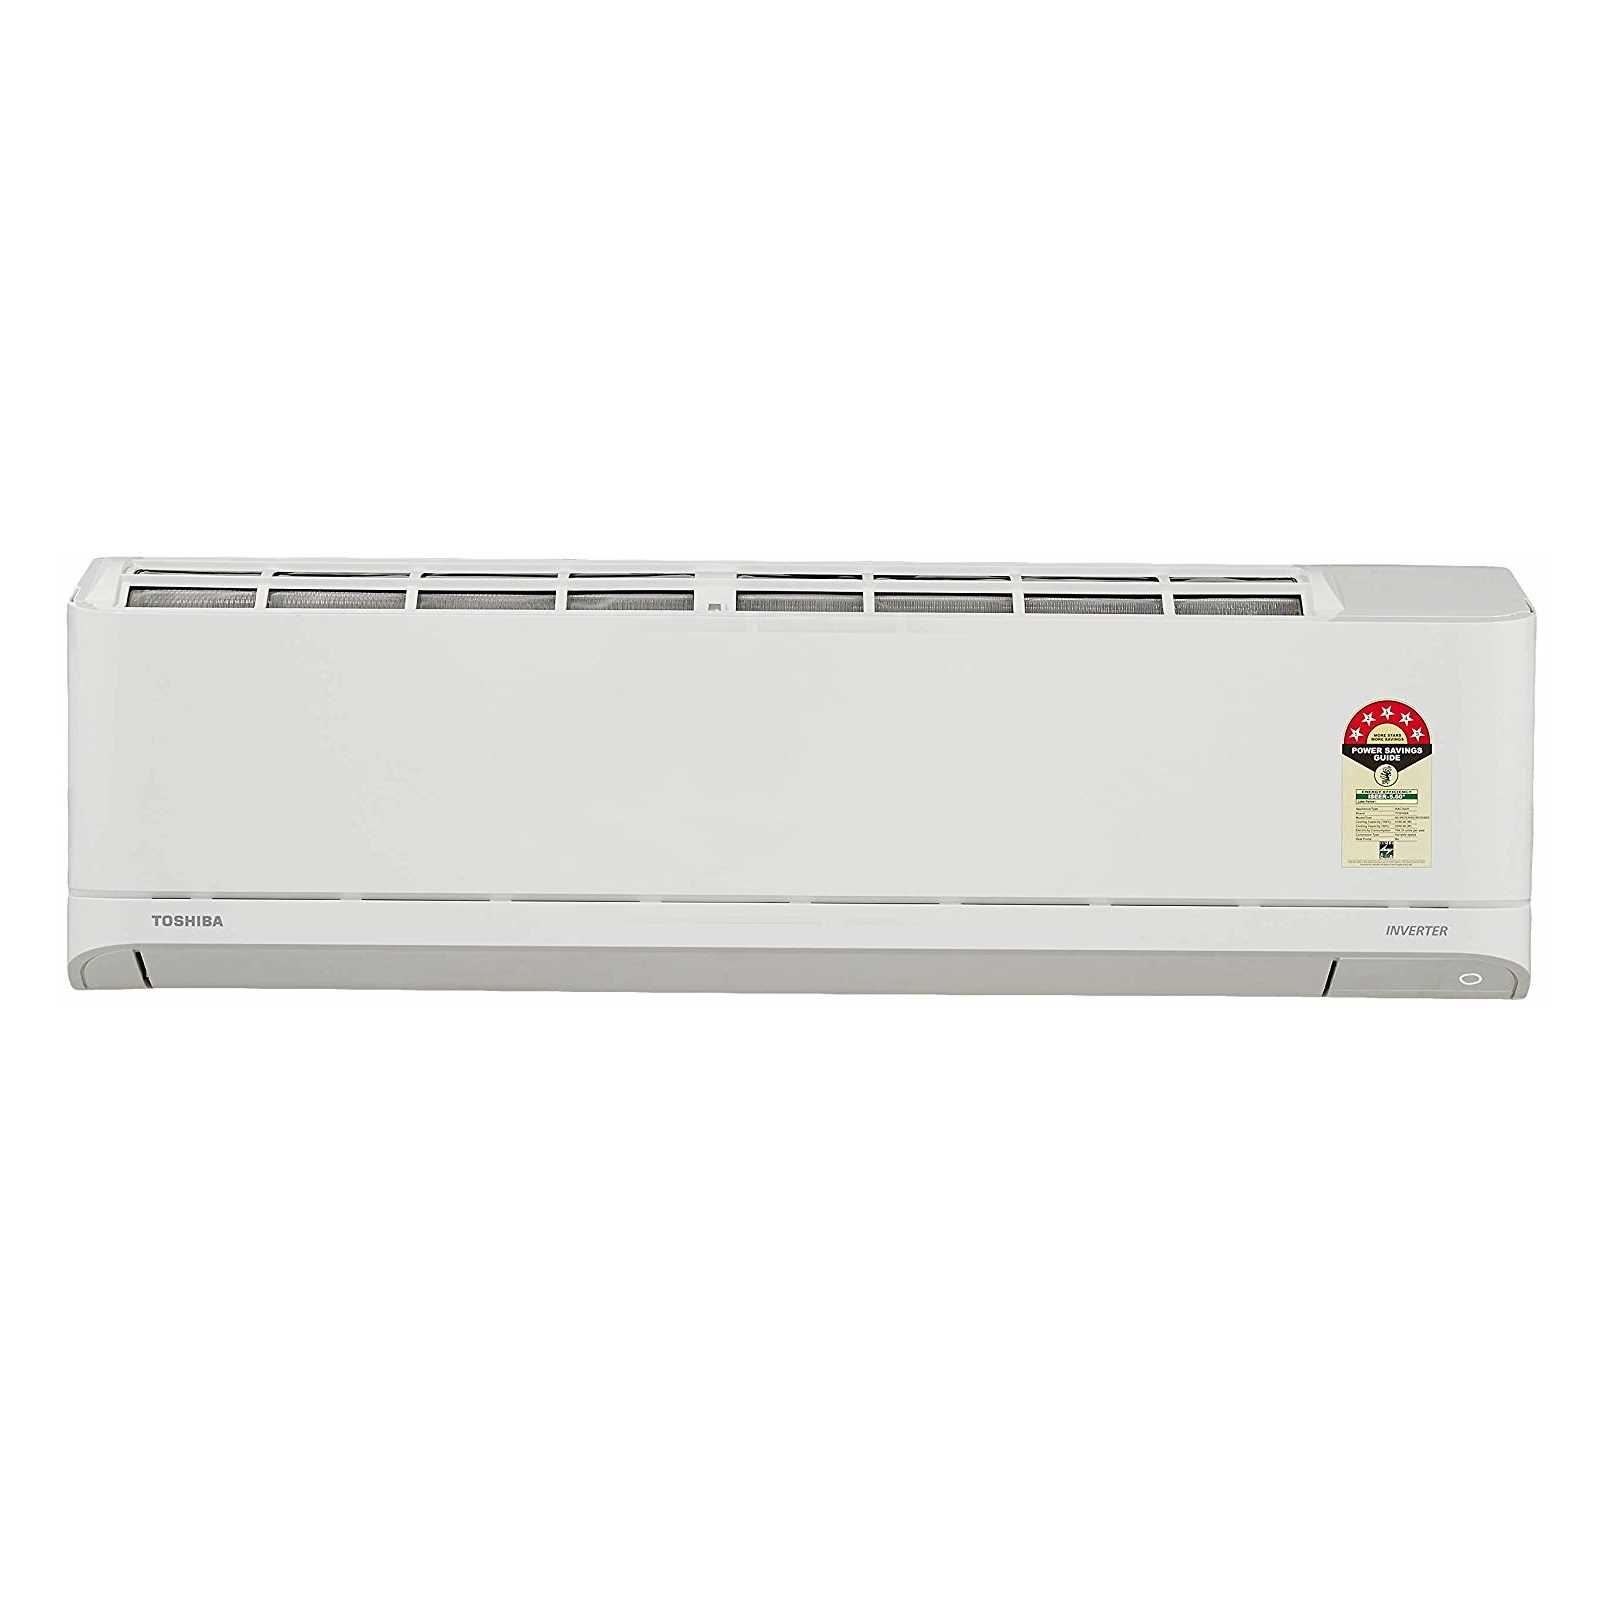 Toshiba RAS 18PKCV2G IN 1.5 Ton 5 Star Inverter Split AC